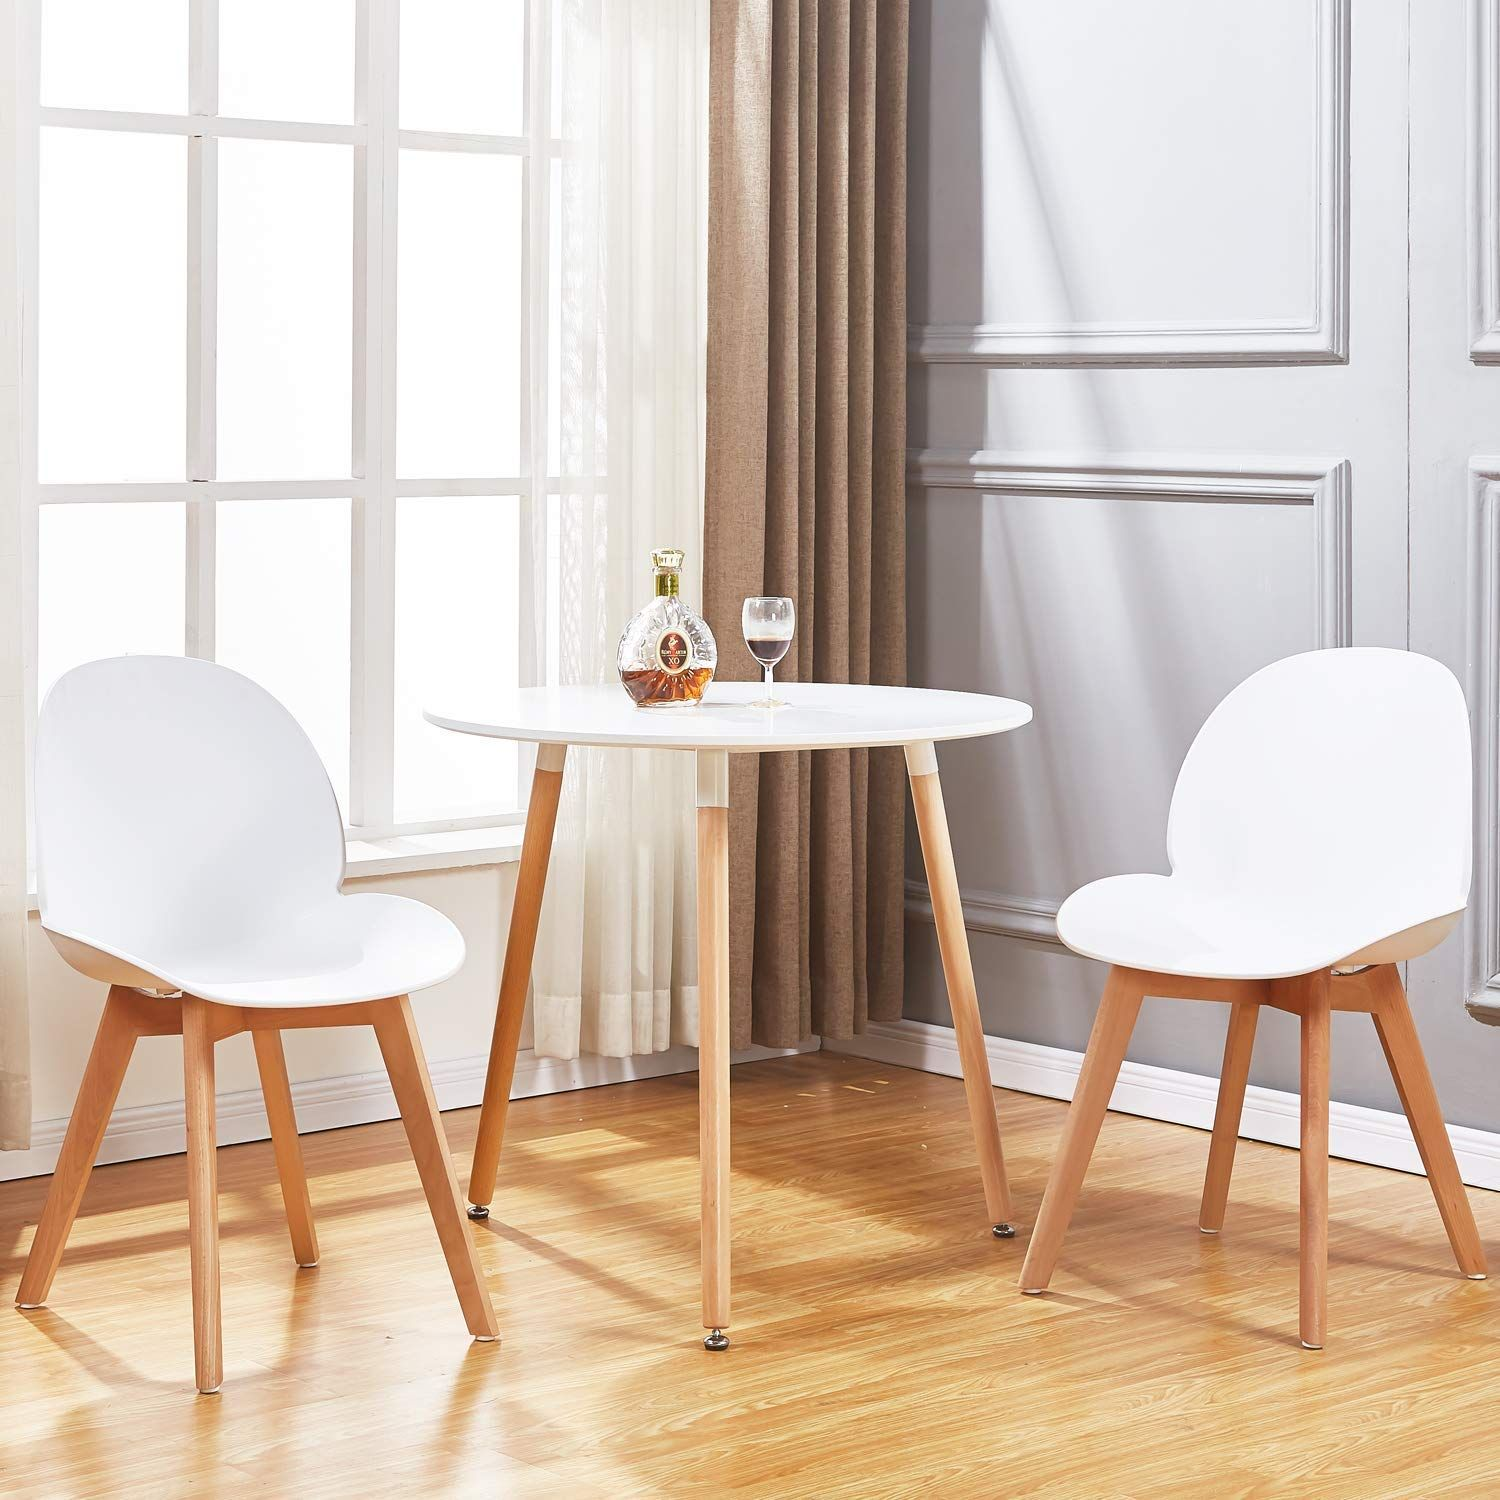 c9252736af0d GreenForest Dining Table White Modern Round Table with Wood Legs for Kitchen  Living Room Leisure Pedestal Table -- Want to know more